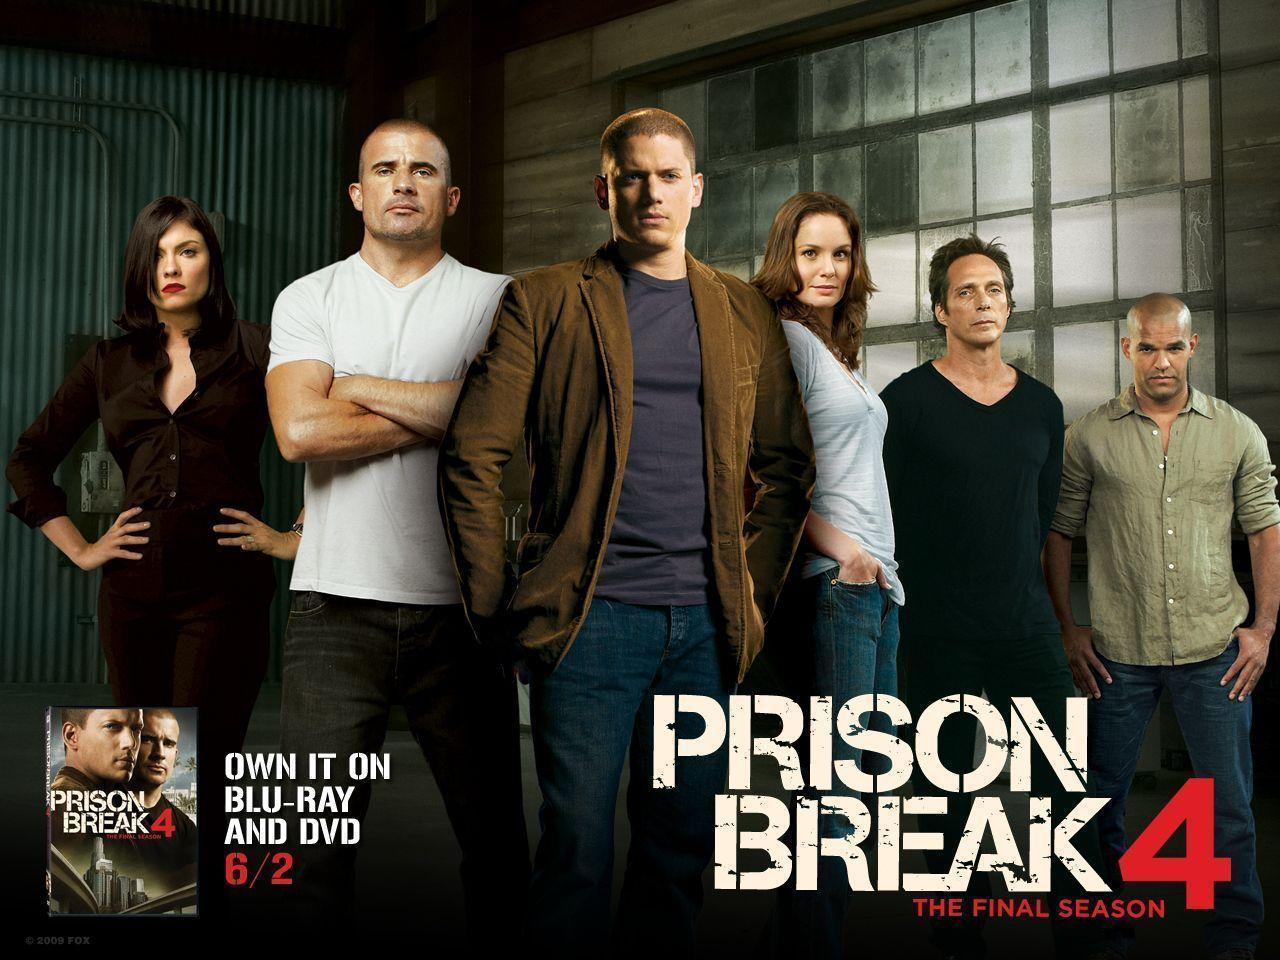 Prison Break Season 4 Wallpapers Wallpaper Cave